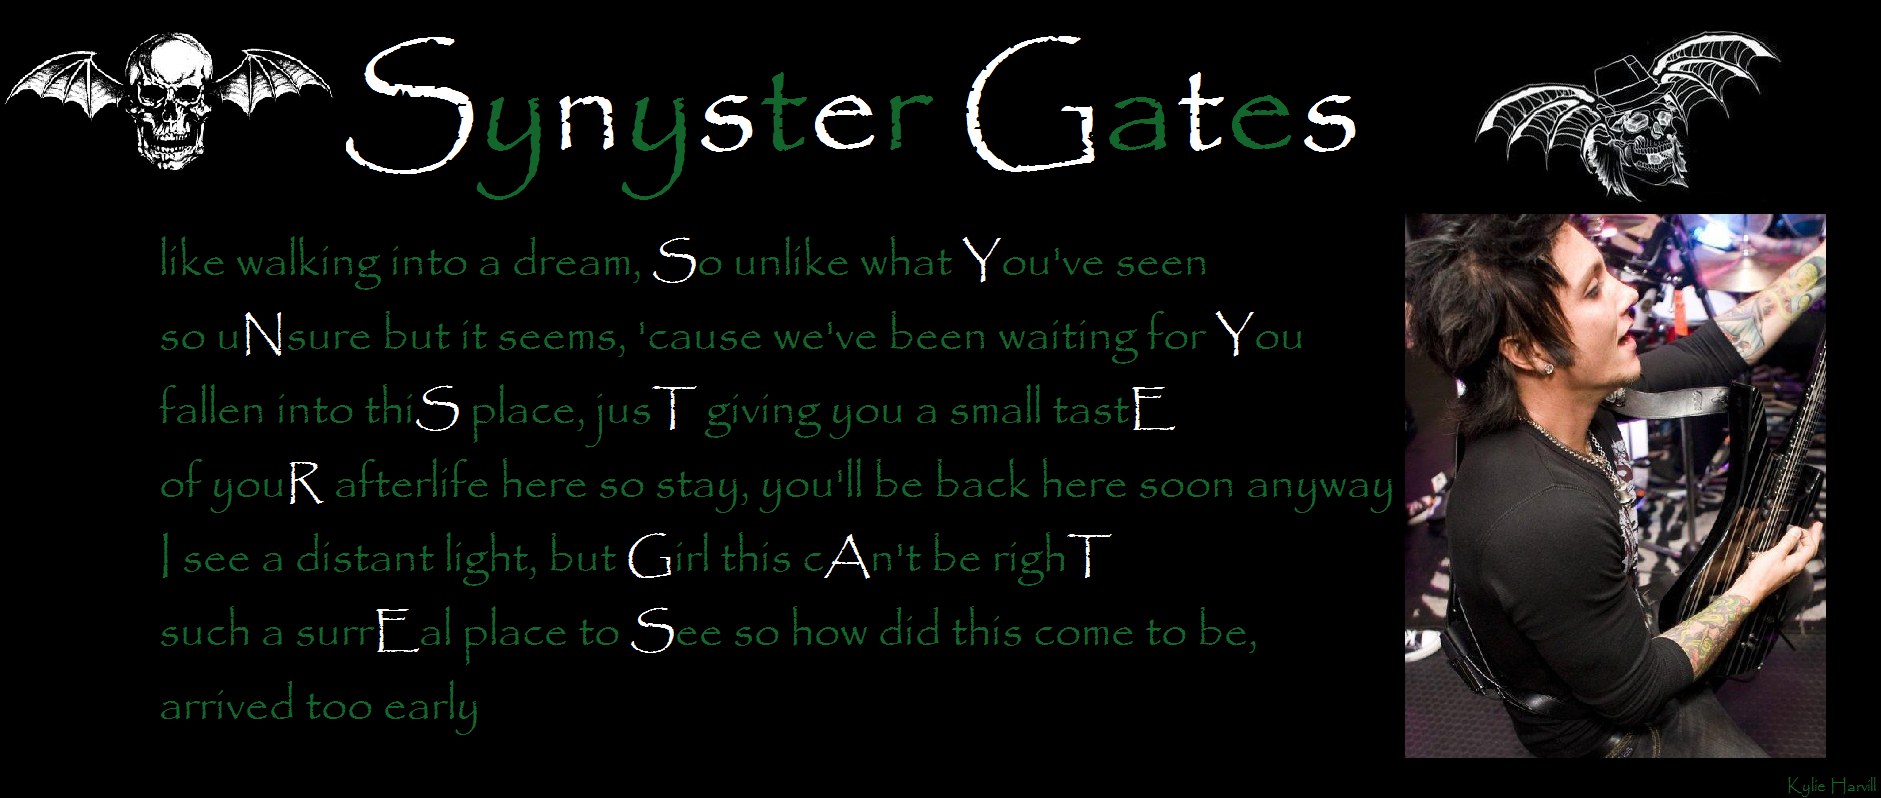 Pin Synyster-gates-quotes-image-search-results on Pinterest